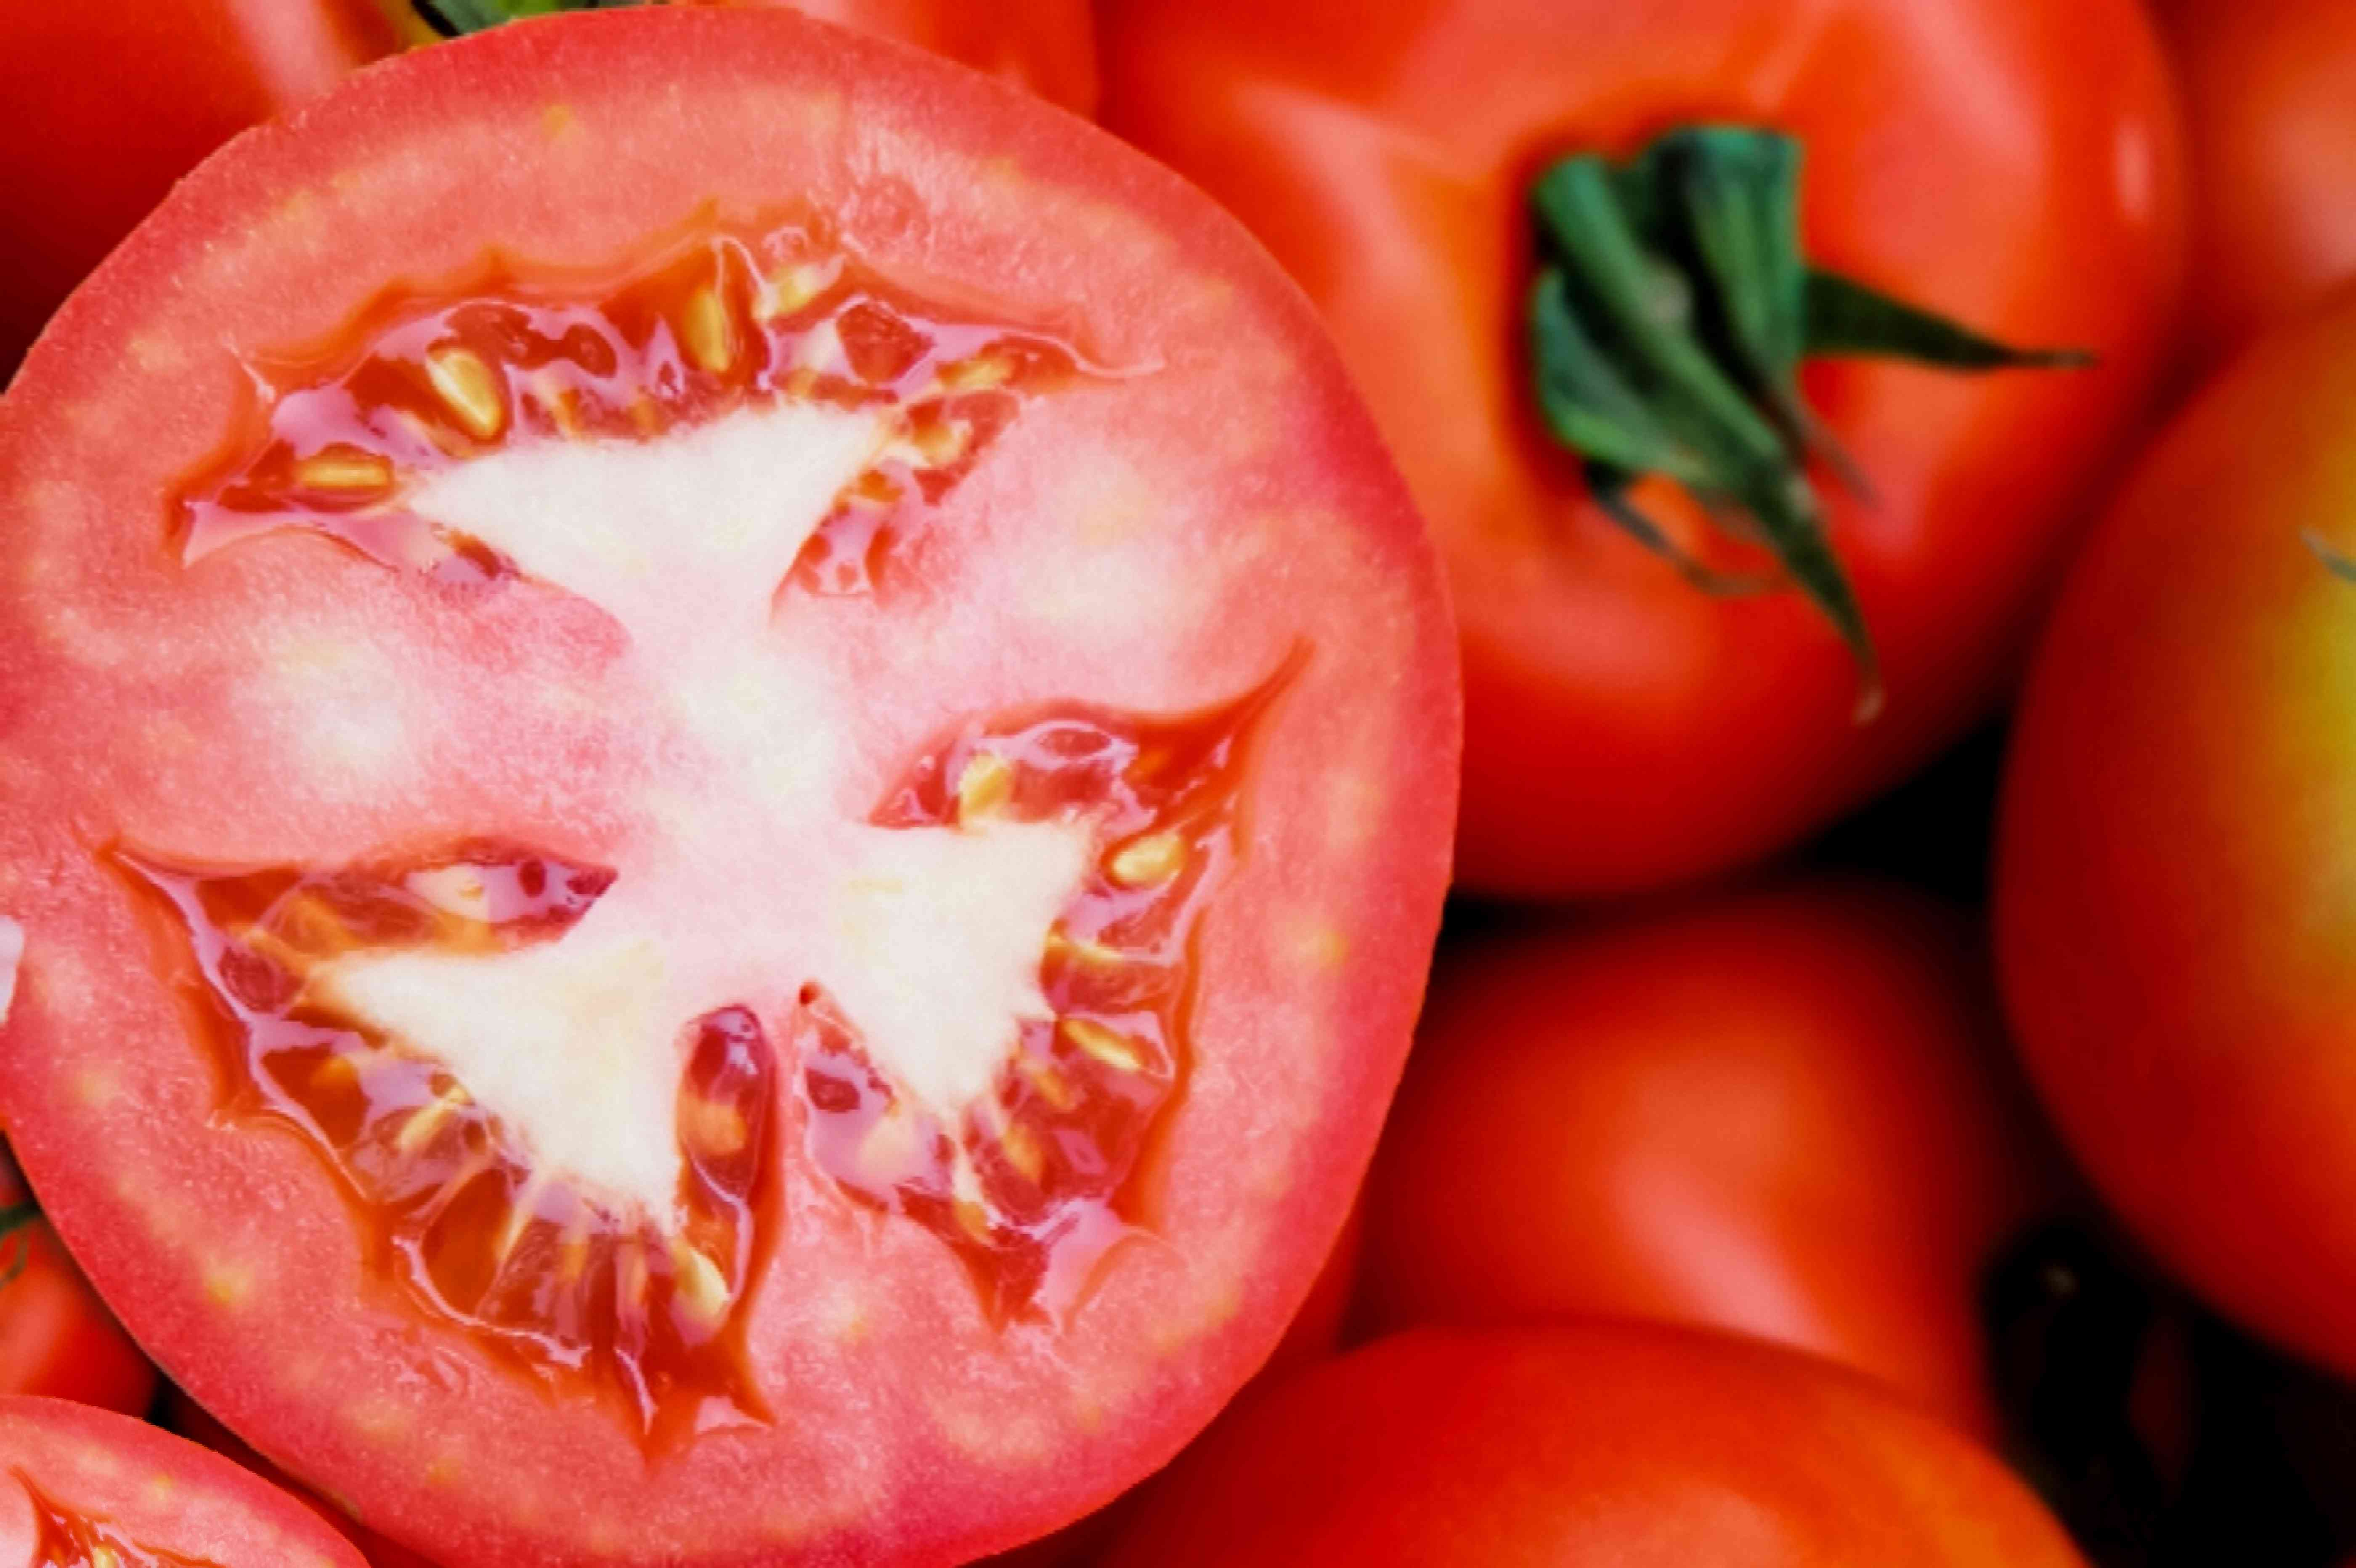 cutting off the shoulder of the tomato